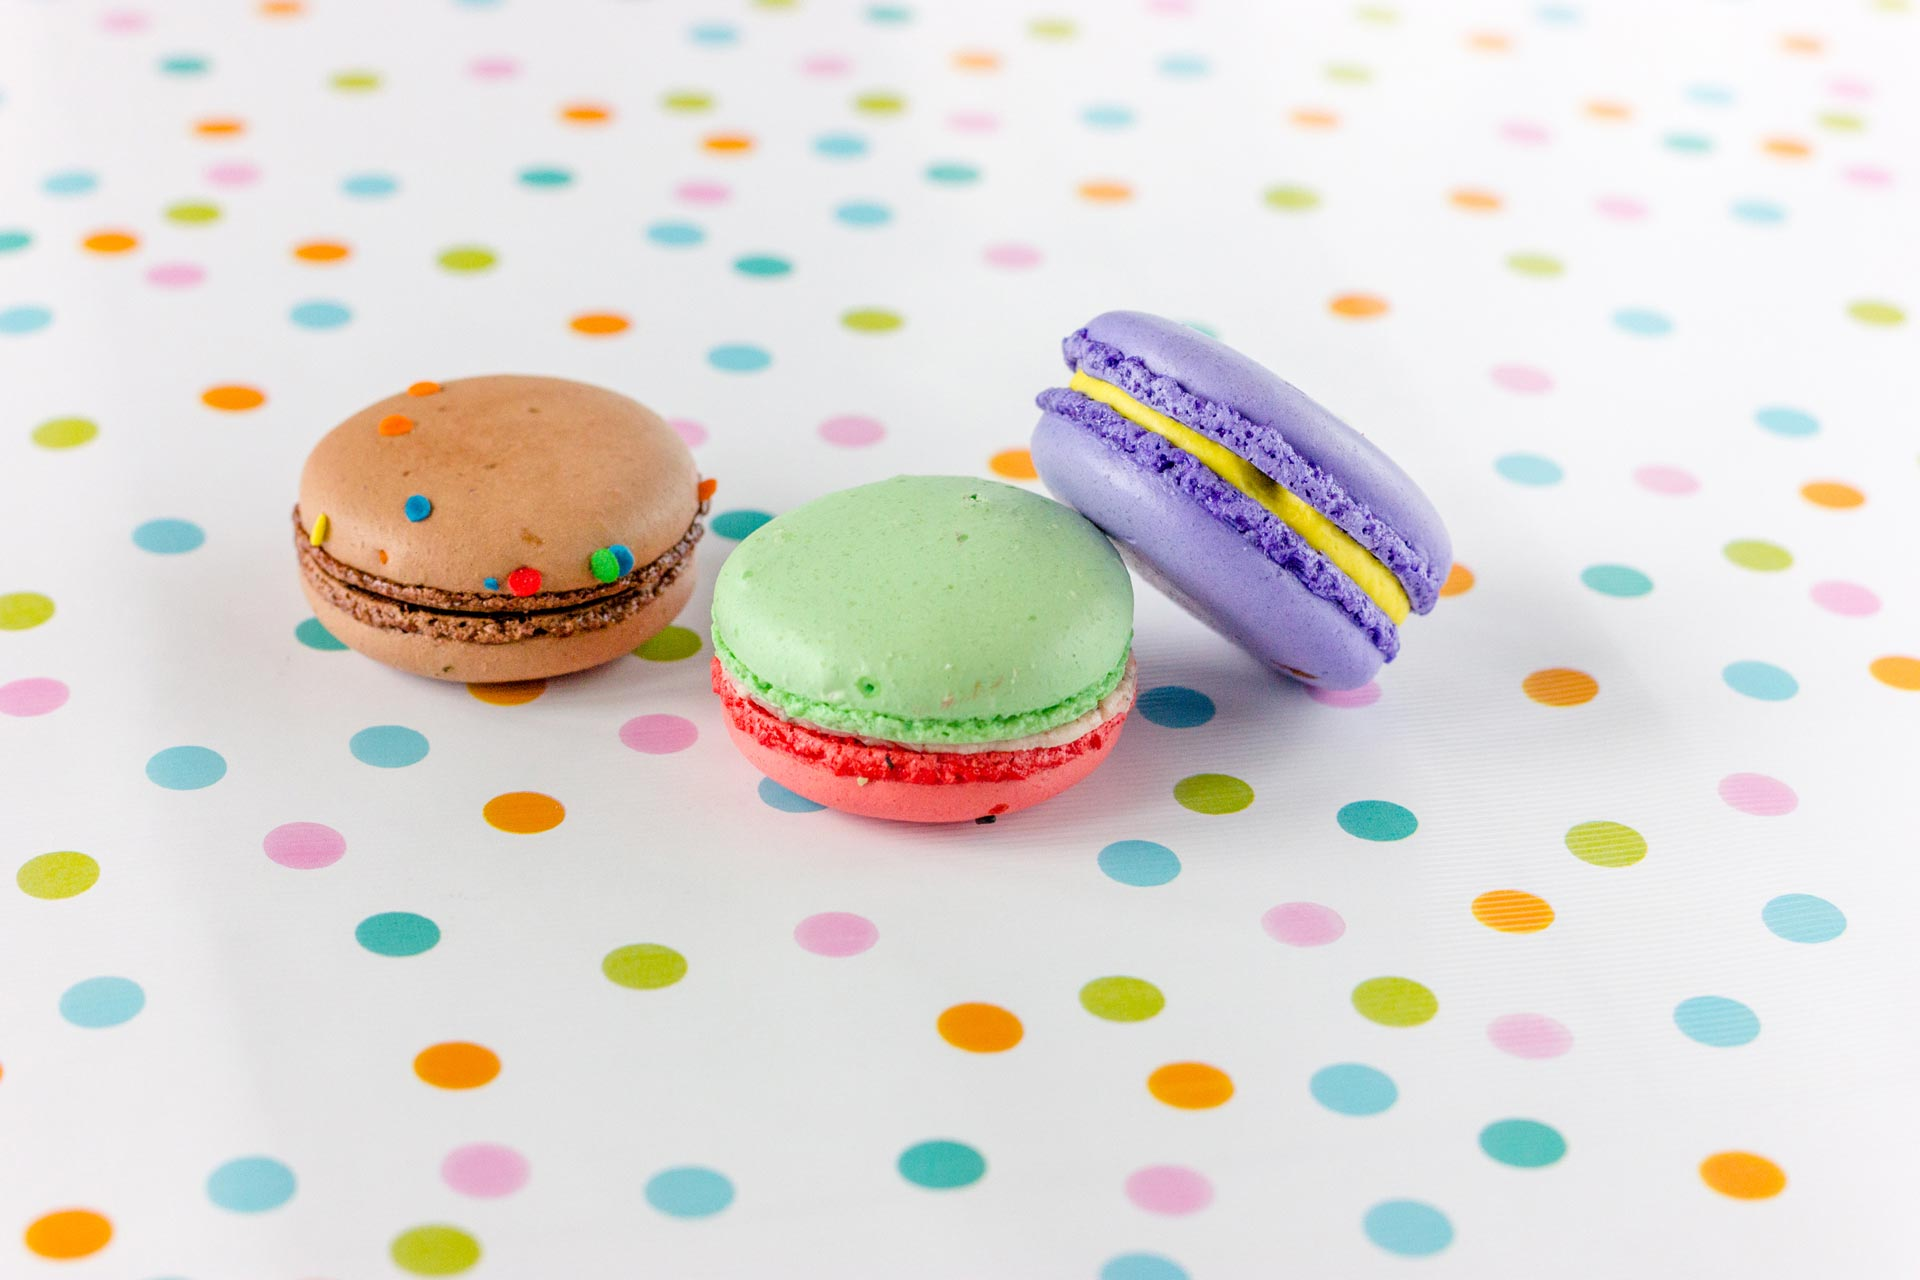 Colorful Macaron Styled Cookies